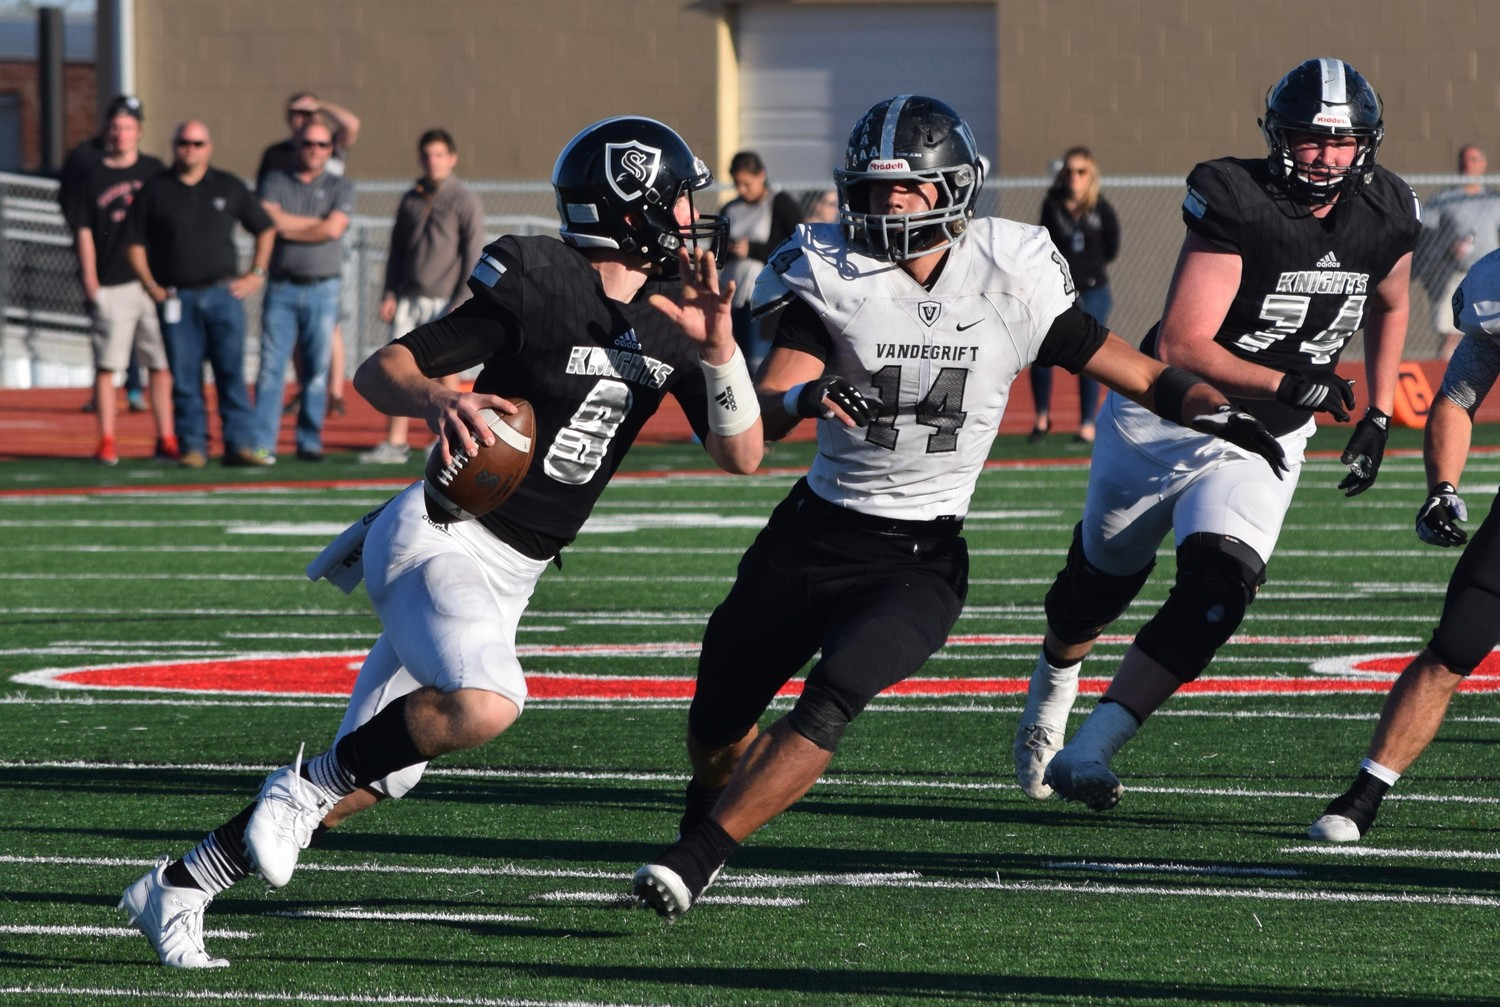 Evryn Smith and Vandegrift lost to Cibolo Steele 36-18 in the area round of the playoffs Friday in New Braunfels.